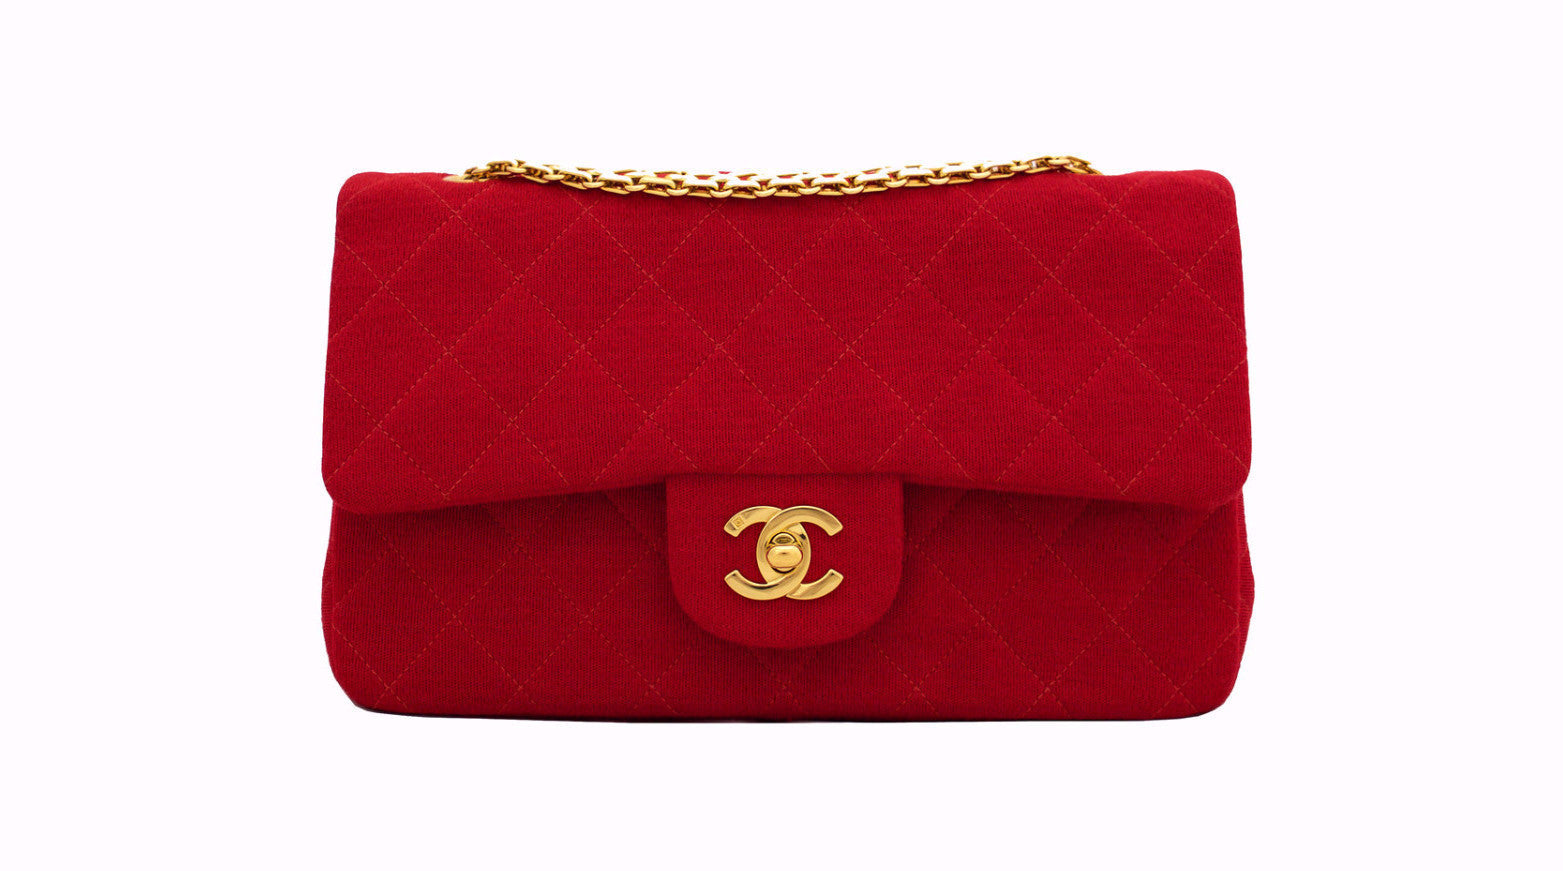 42e88c338713 CHANEL VINTAGE BAG - Classic 2.55 Double Flap in Jersey Red - Vintage  District